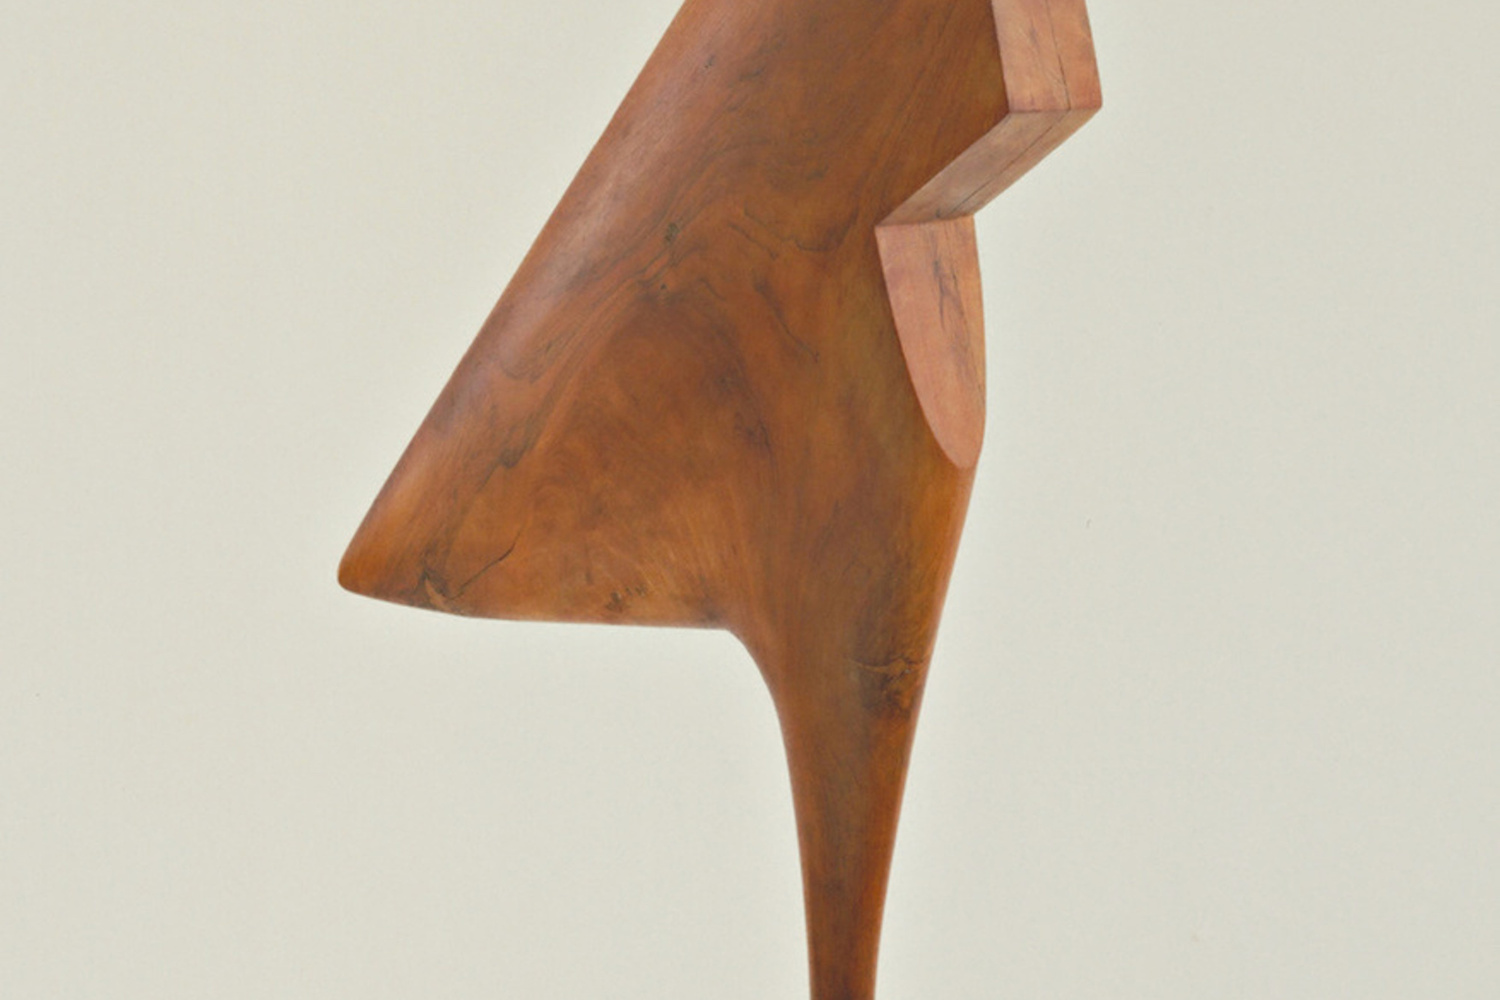 "Constantin Brancusi. The Cock. 1924. Cherry, 47 5/8 x 18 1/4 x 5 3/4"" (121 x 46.3 x 14.6 cm). Gift of LeRay W. Berdeau. © Succession Brancusi - All rights reserved (ARS) 2018"